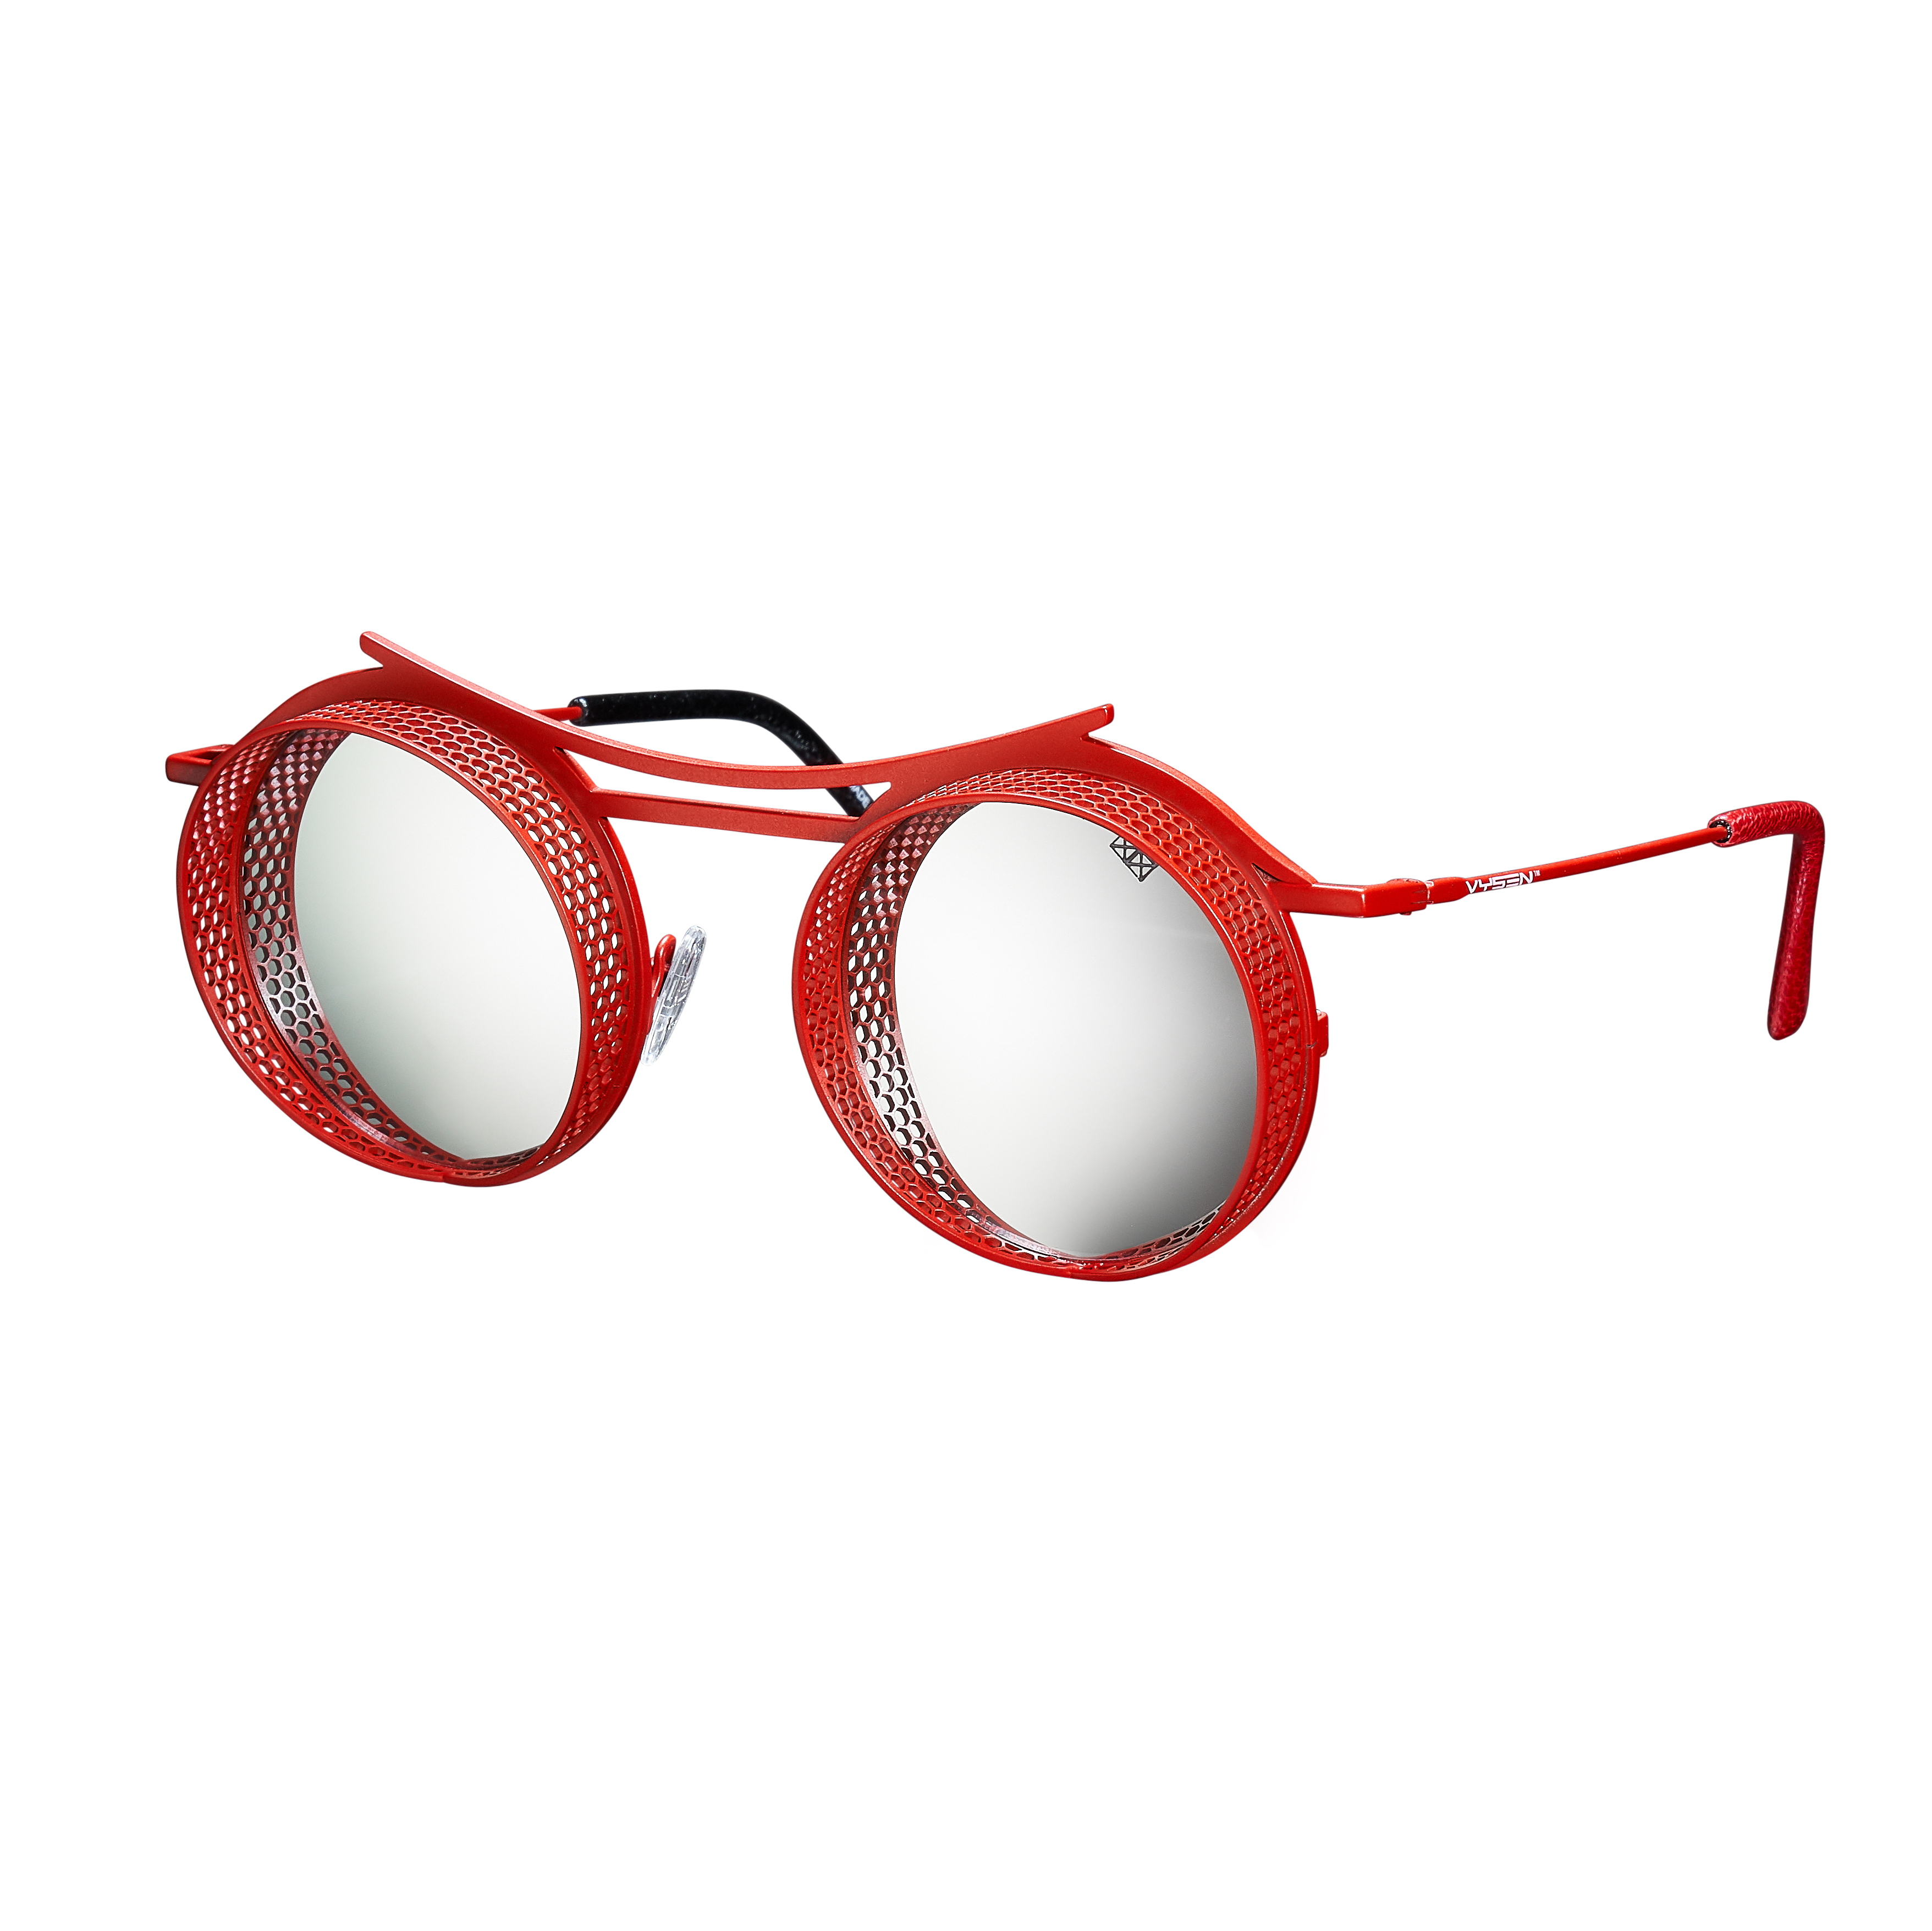 ONIX - Limited Edition - Red Matte Frame - Silver Mirror Lenses